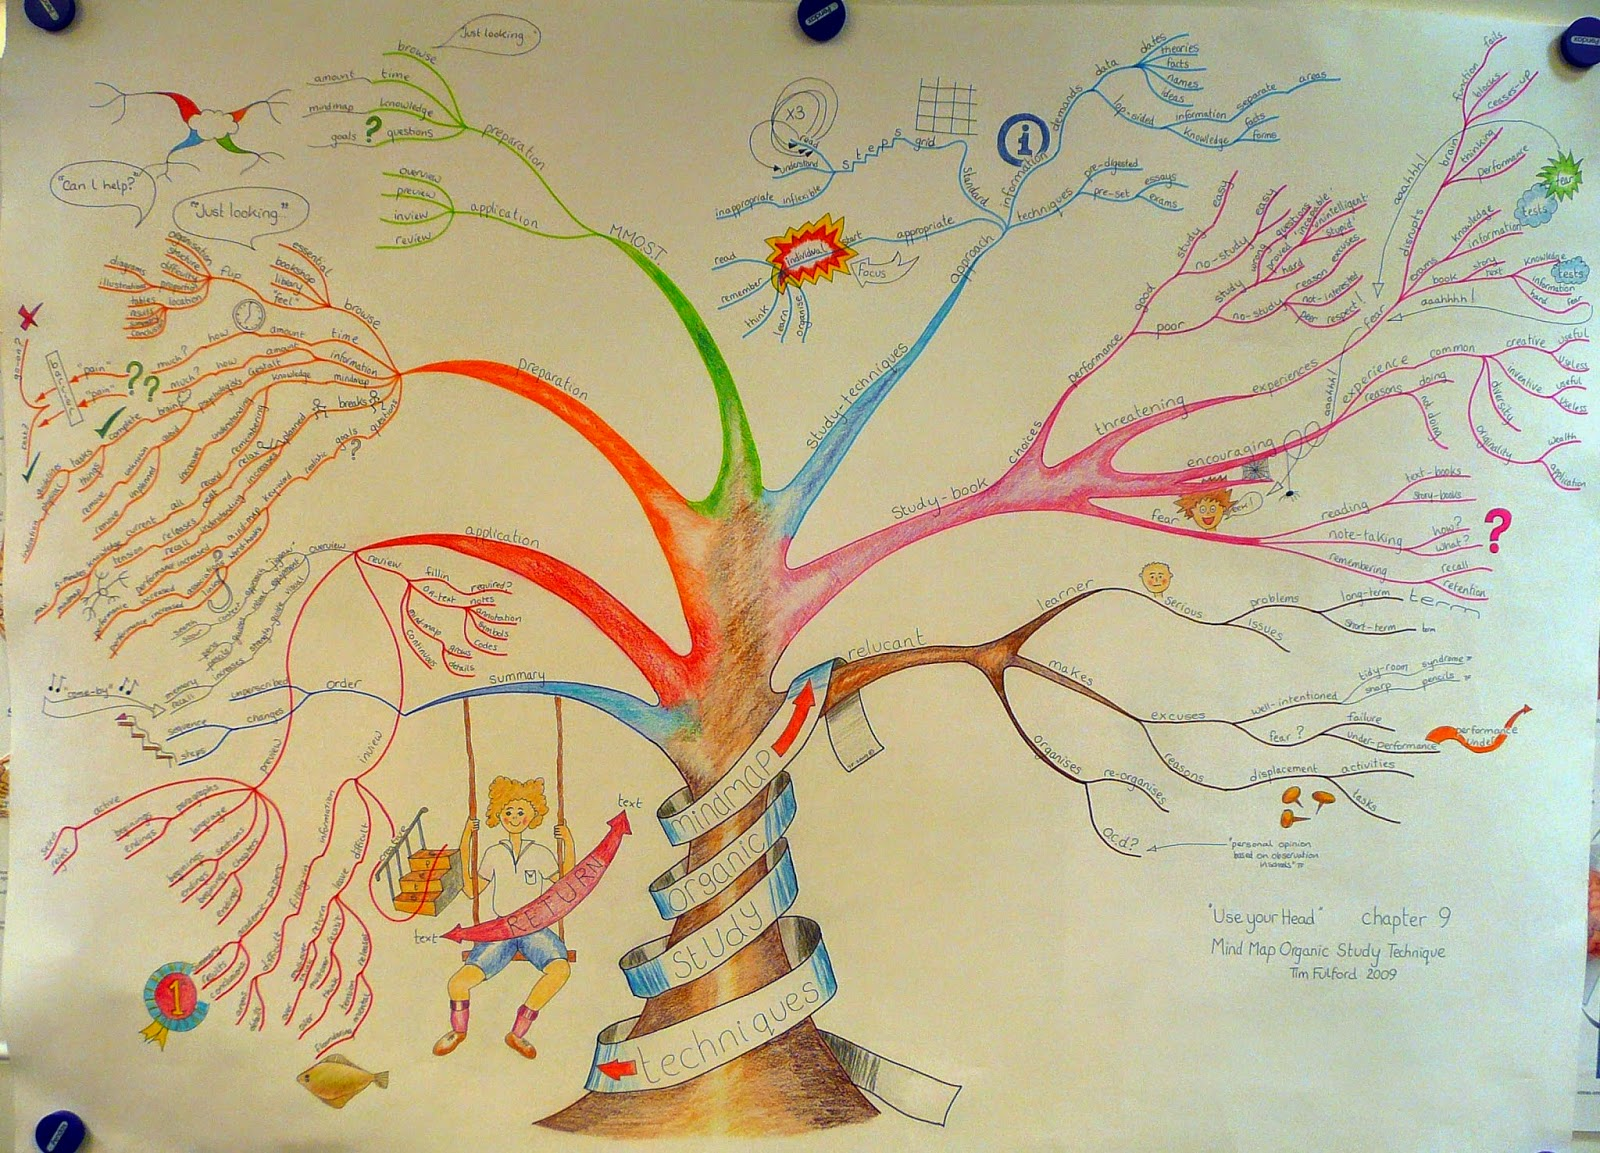 Security Mind Map Includes Mind Mapping